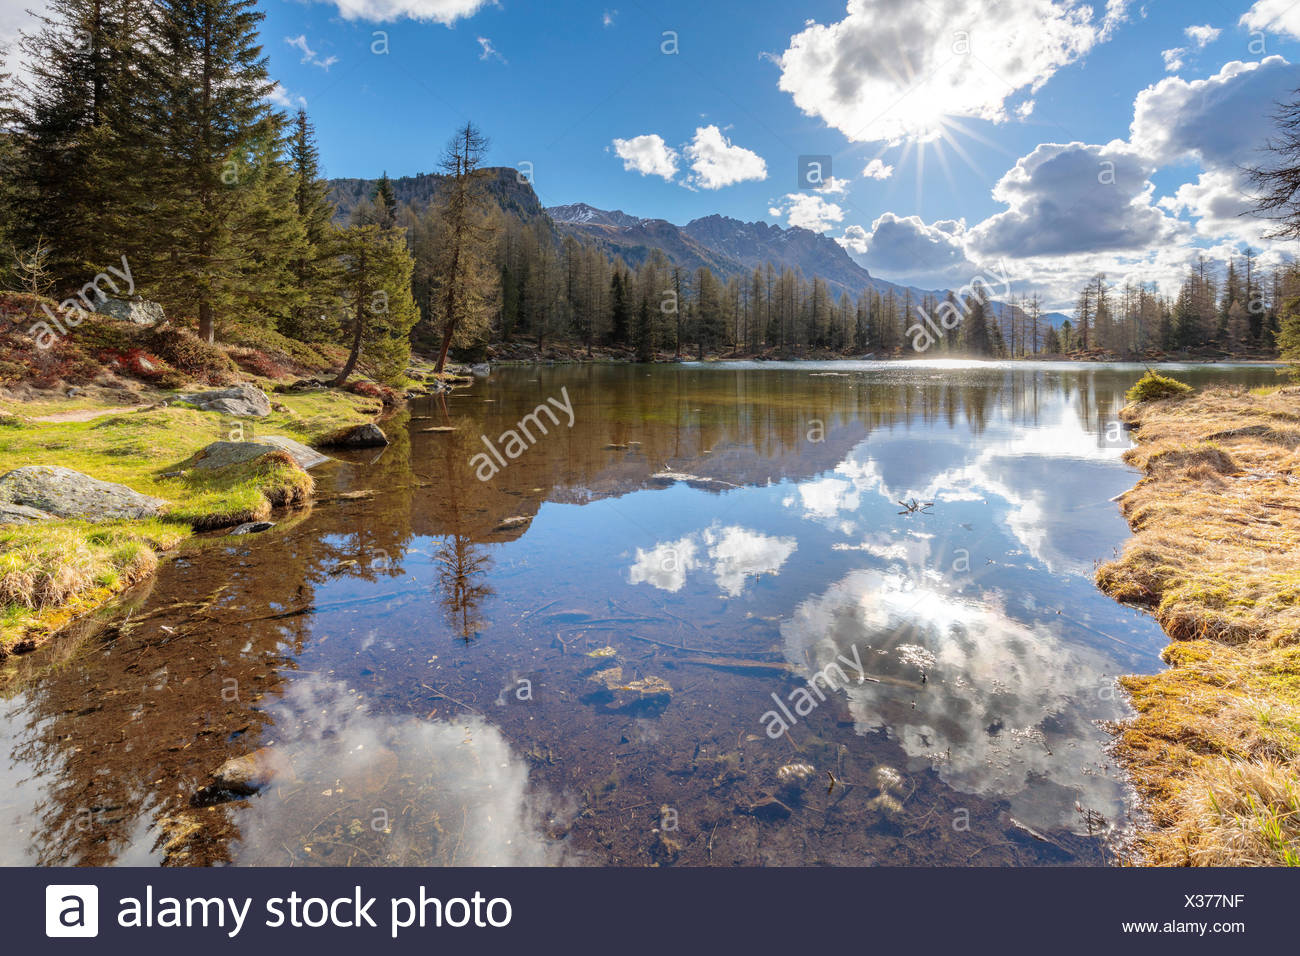 Europe, Italy, Trentino Alto Adige, Moena, Dolomites, the  alpine lake of San Pellegrino surrounded by a forest of firs and larches Stock Photo